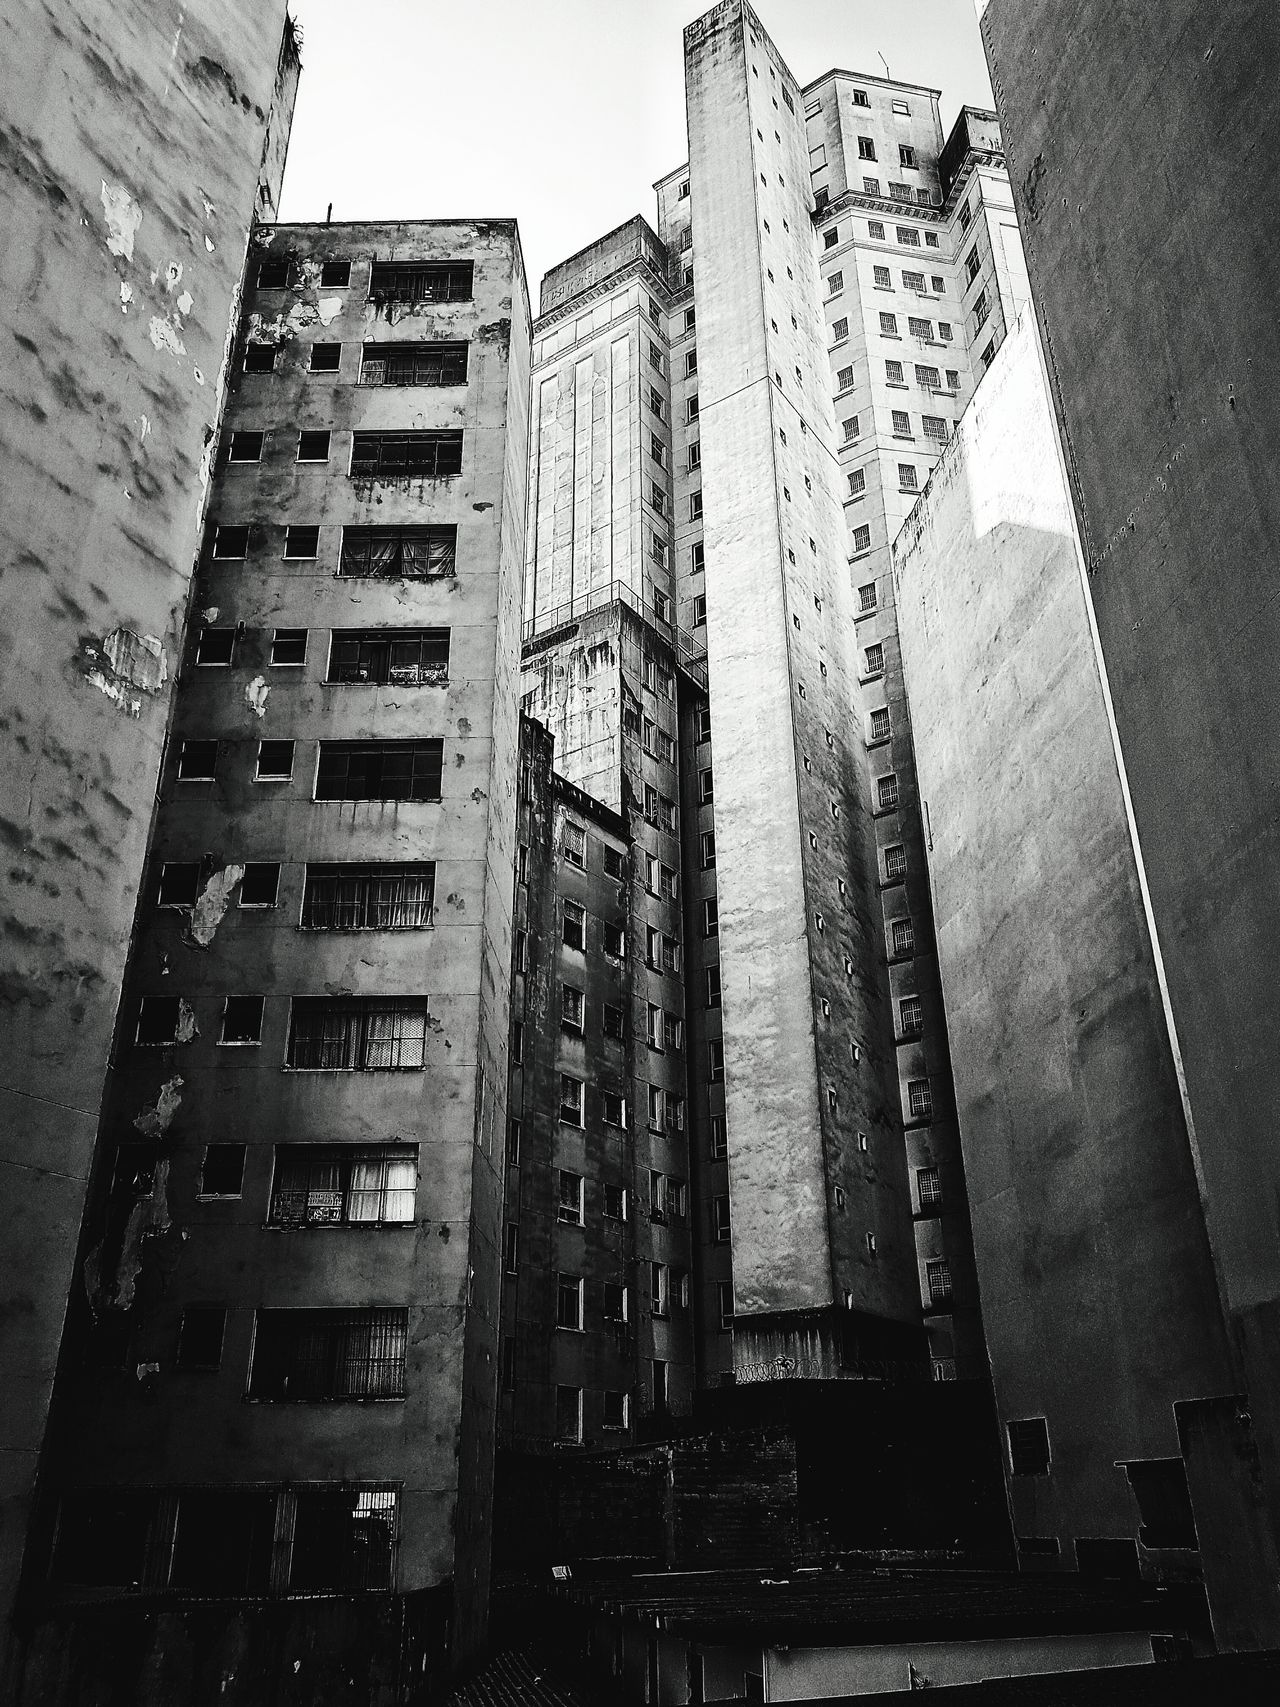 Skyscraper Architecture Built Structure Building Exterior City Low Angle View No People Day Travel Destinations Outdoors Apartment Black And White Blackandwhite Architecture City Building Building Structures Damaged Rusty Worn Out